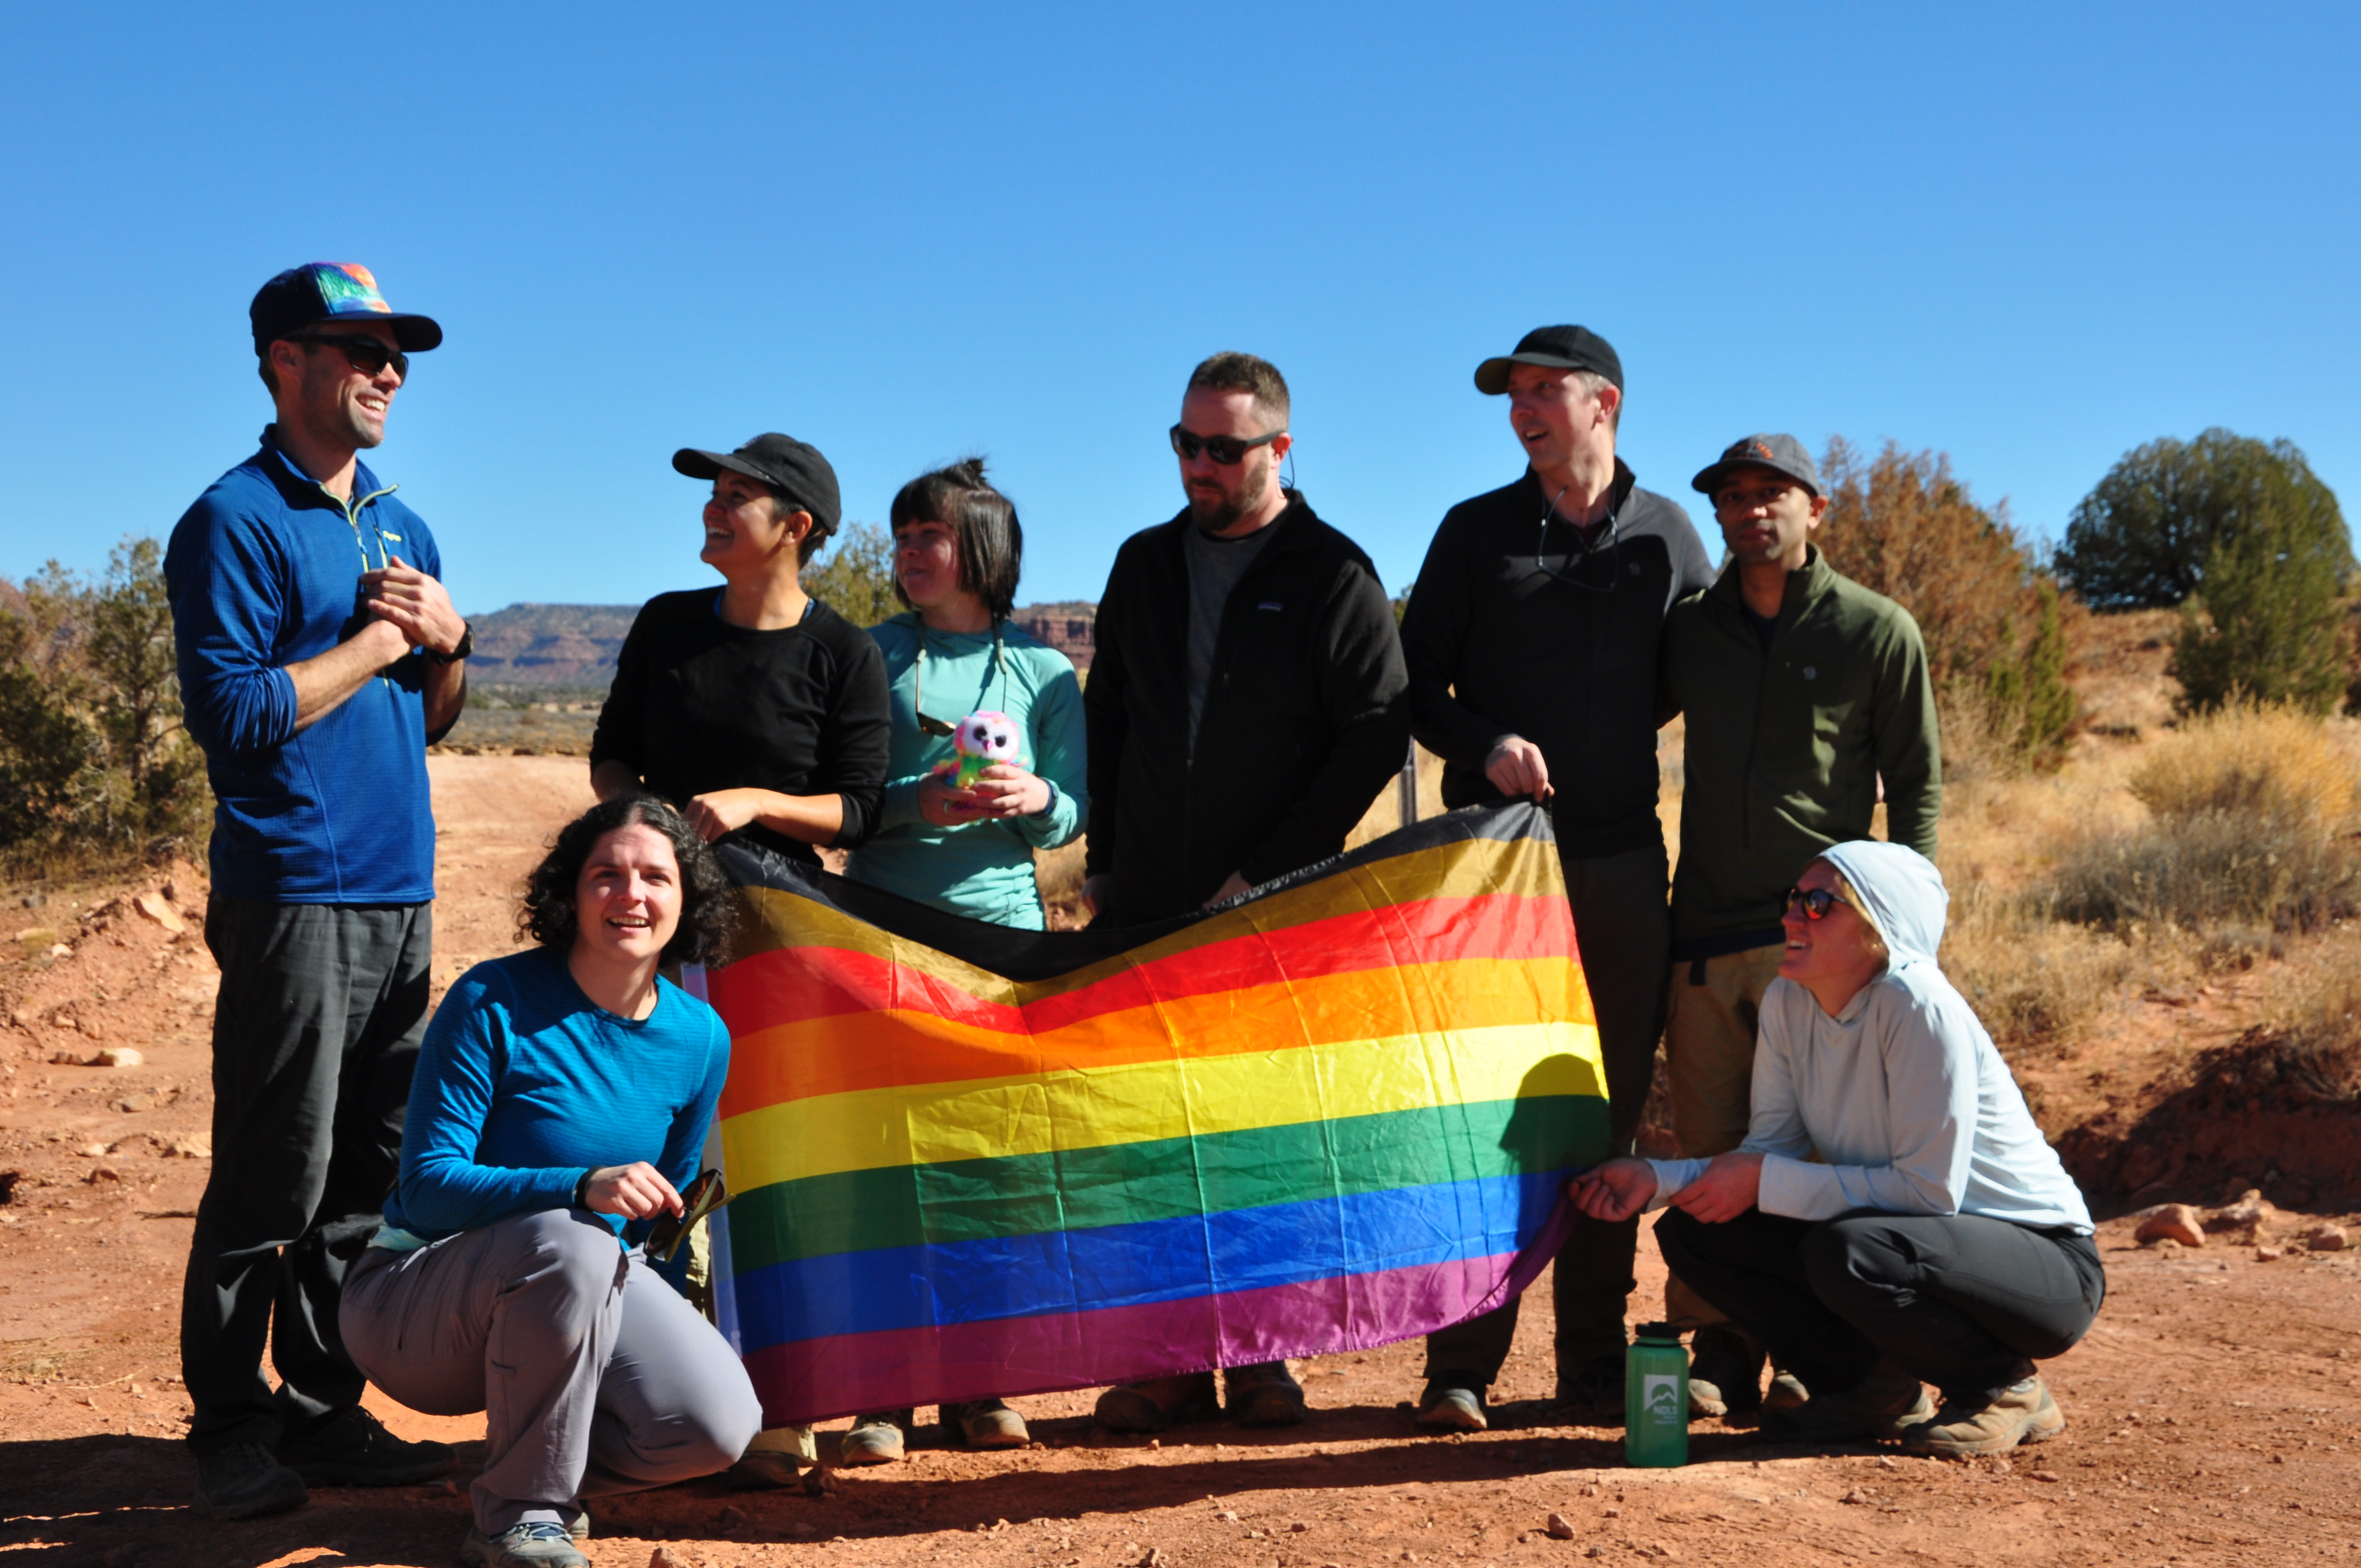 NOLS students pose for a group photo with rainbow flag in Utah's canyonlands